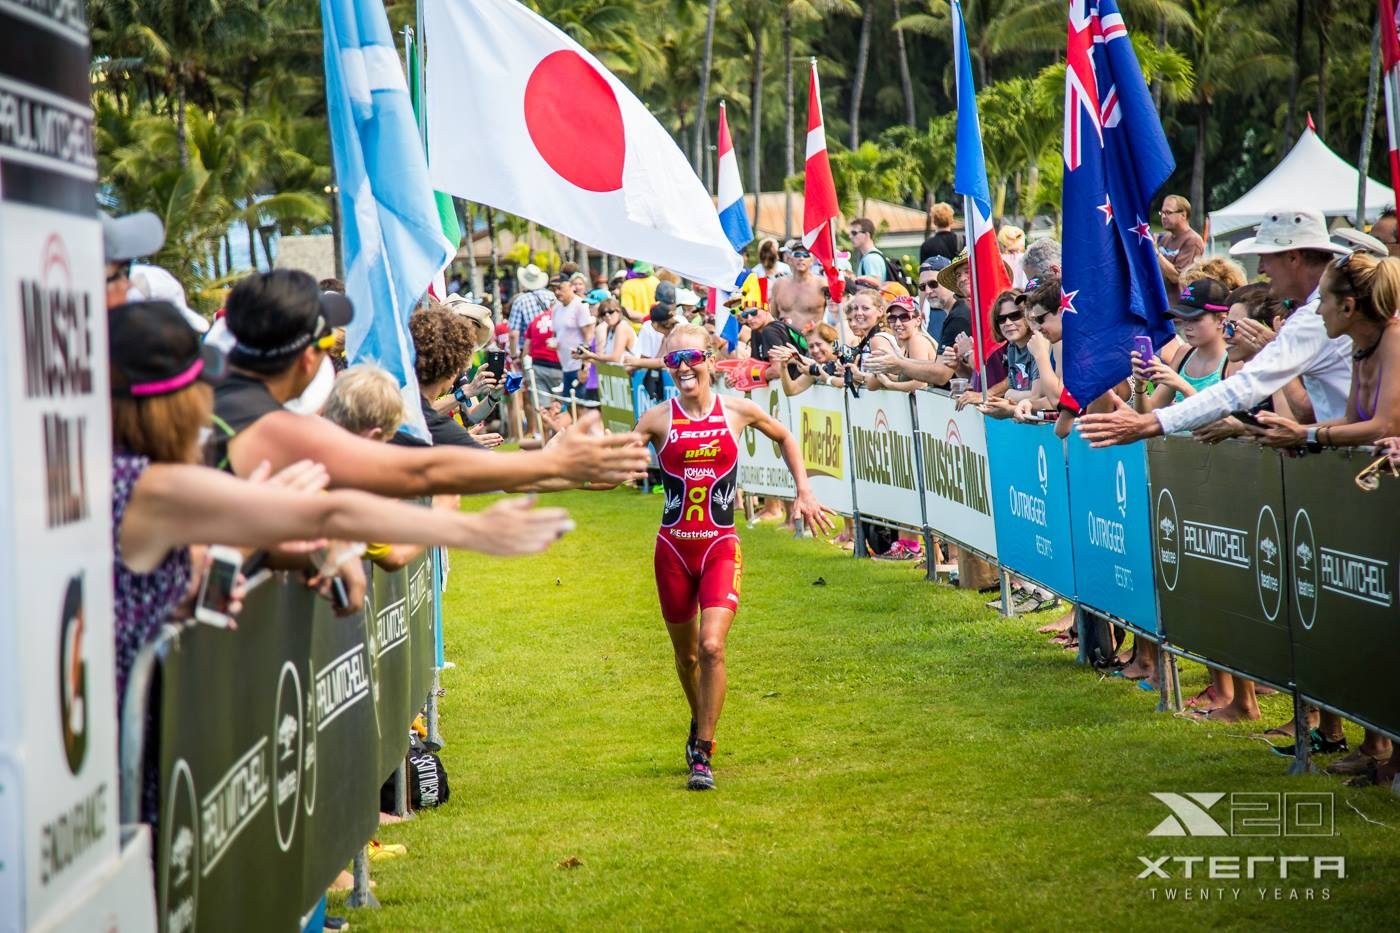 XTERRA_WORLD_CHAMPIONSHIP_2015_00053